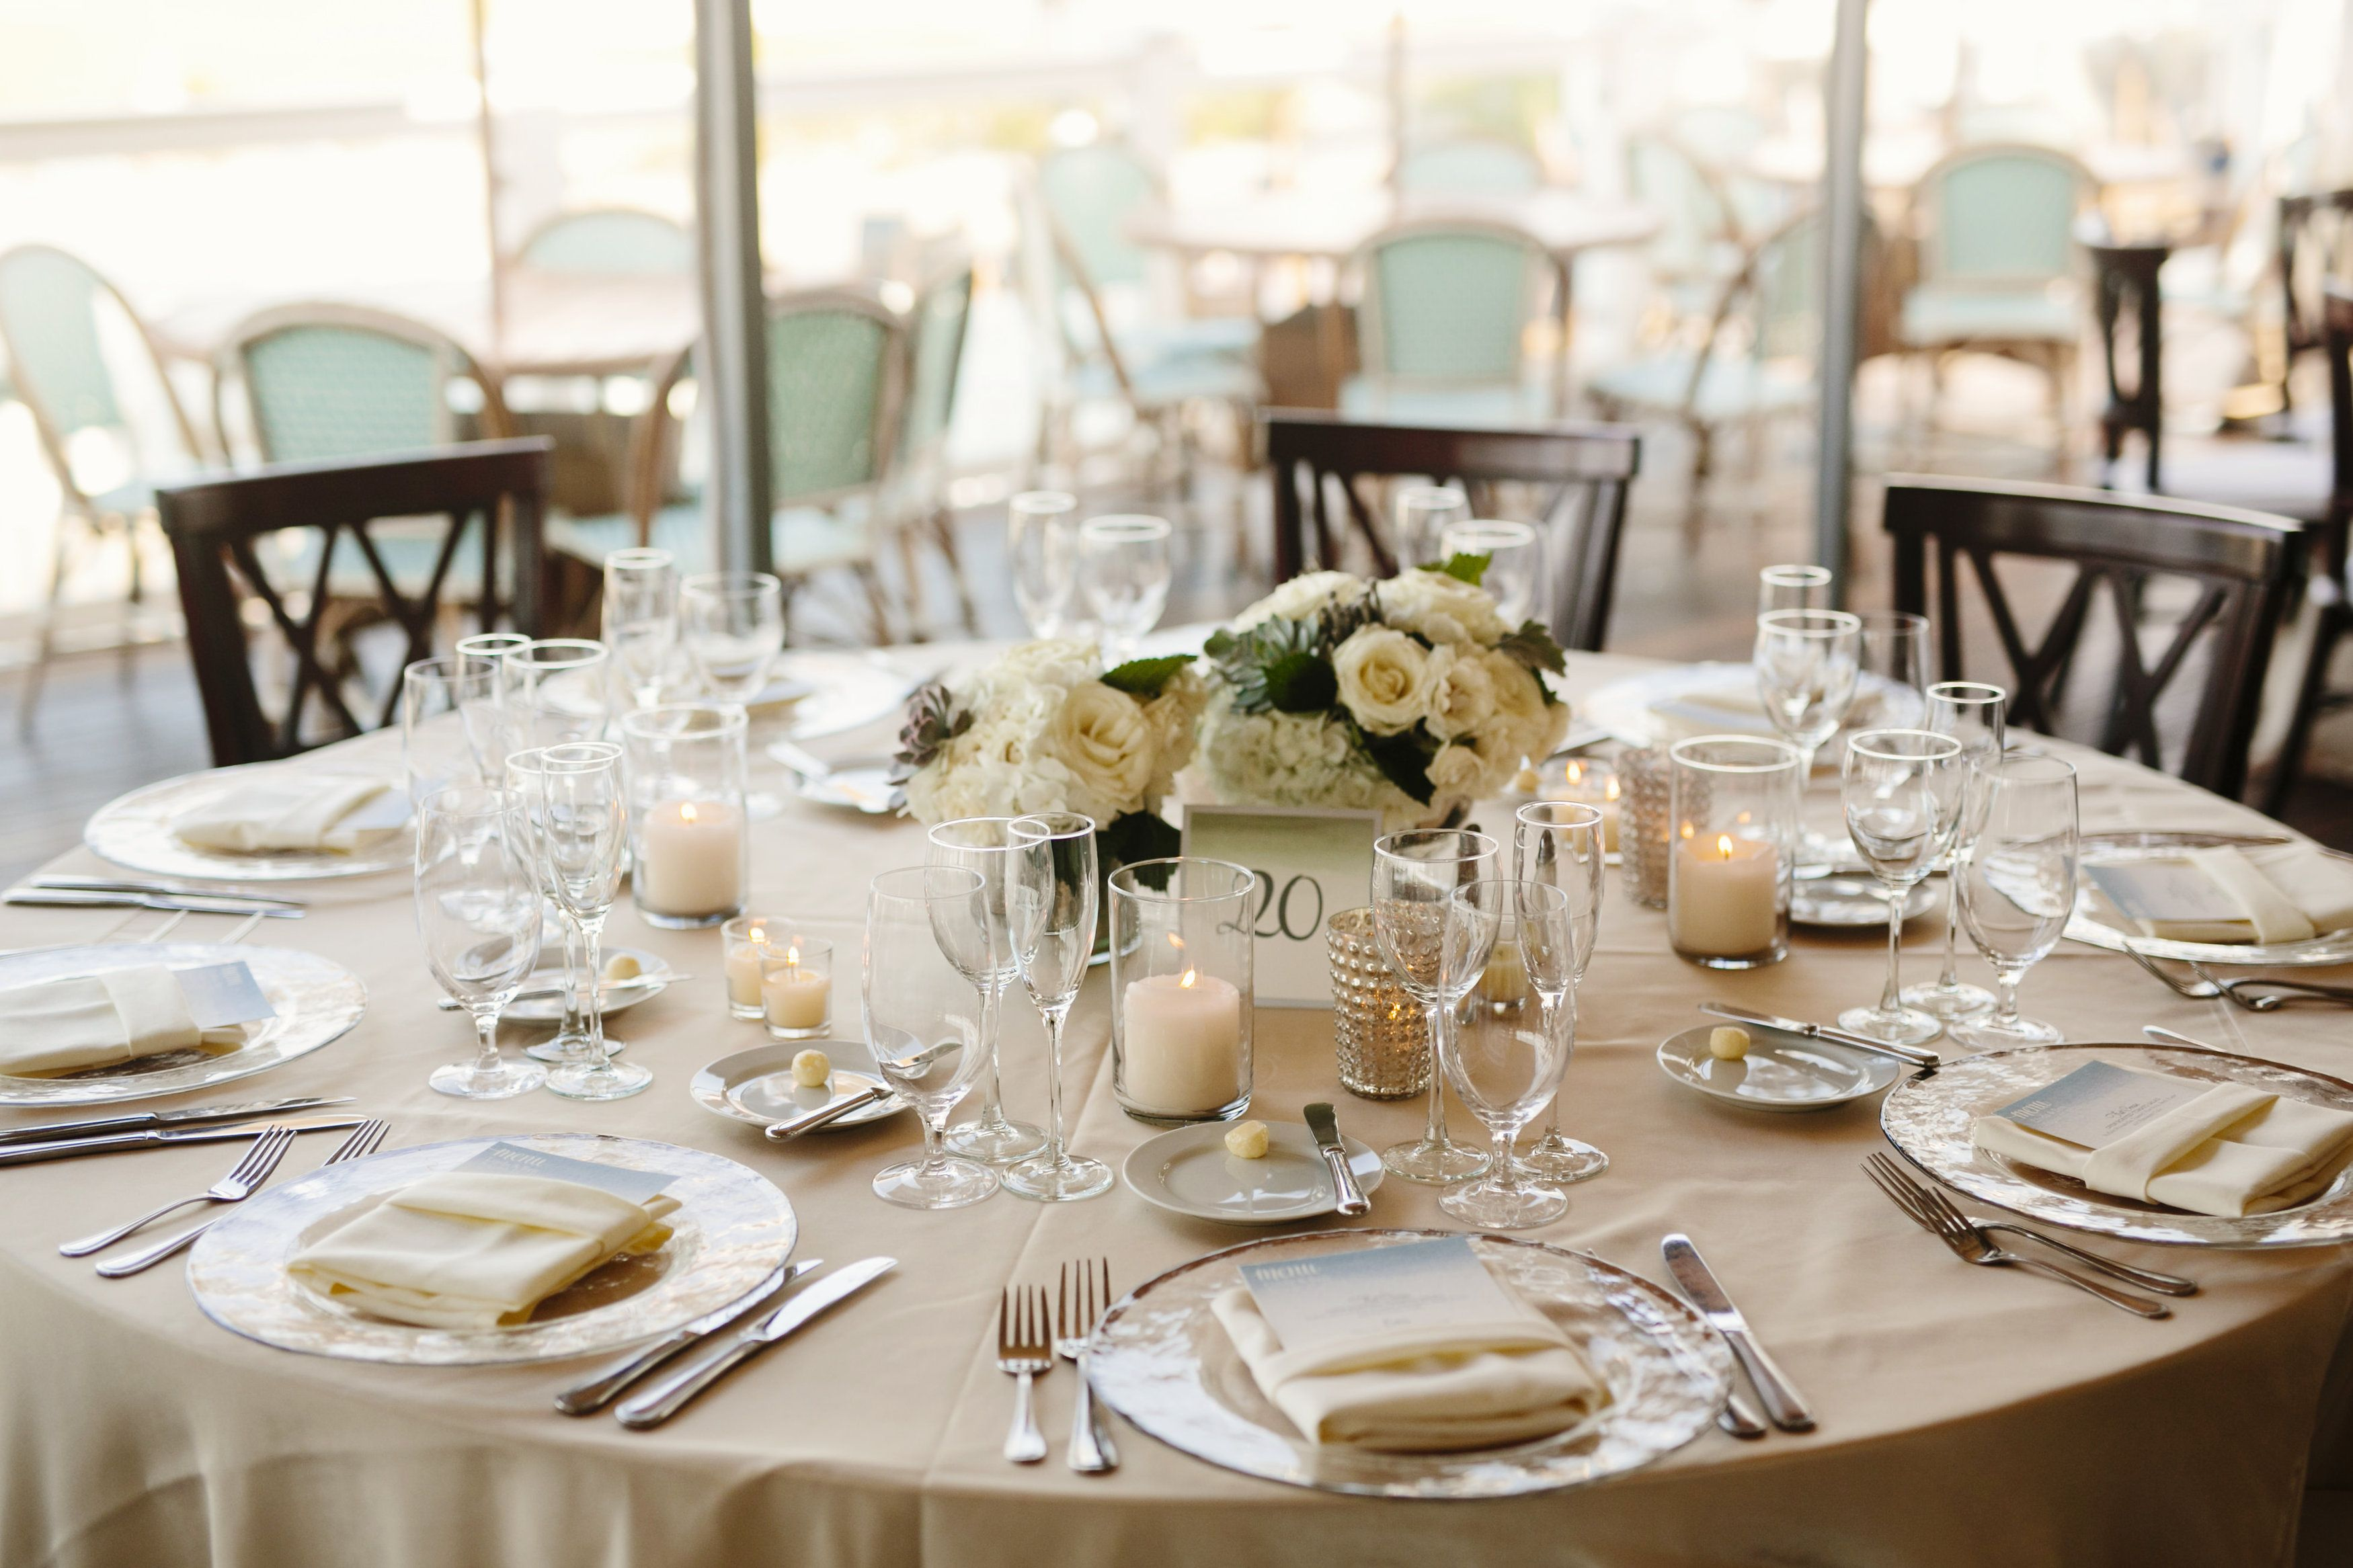 Pin On Weddings Events In Boston And New England